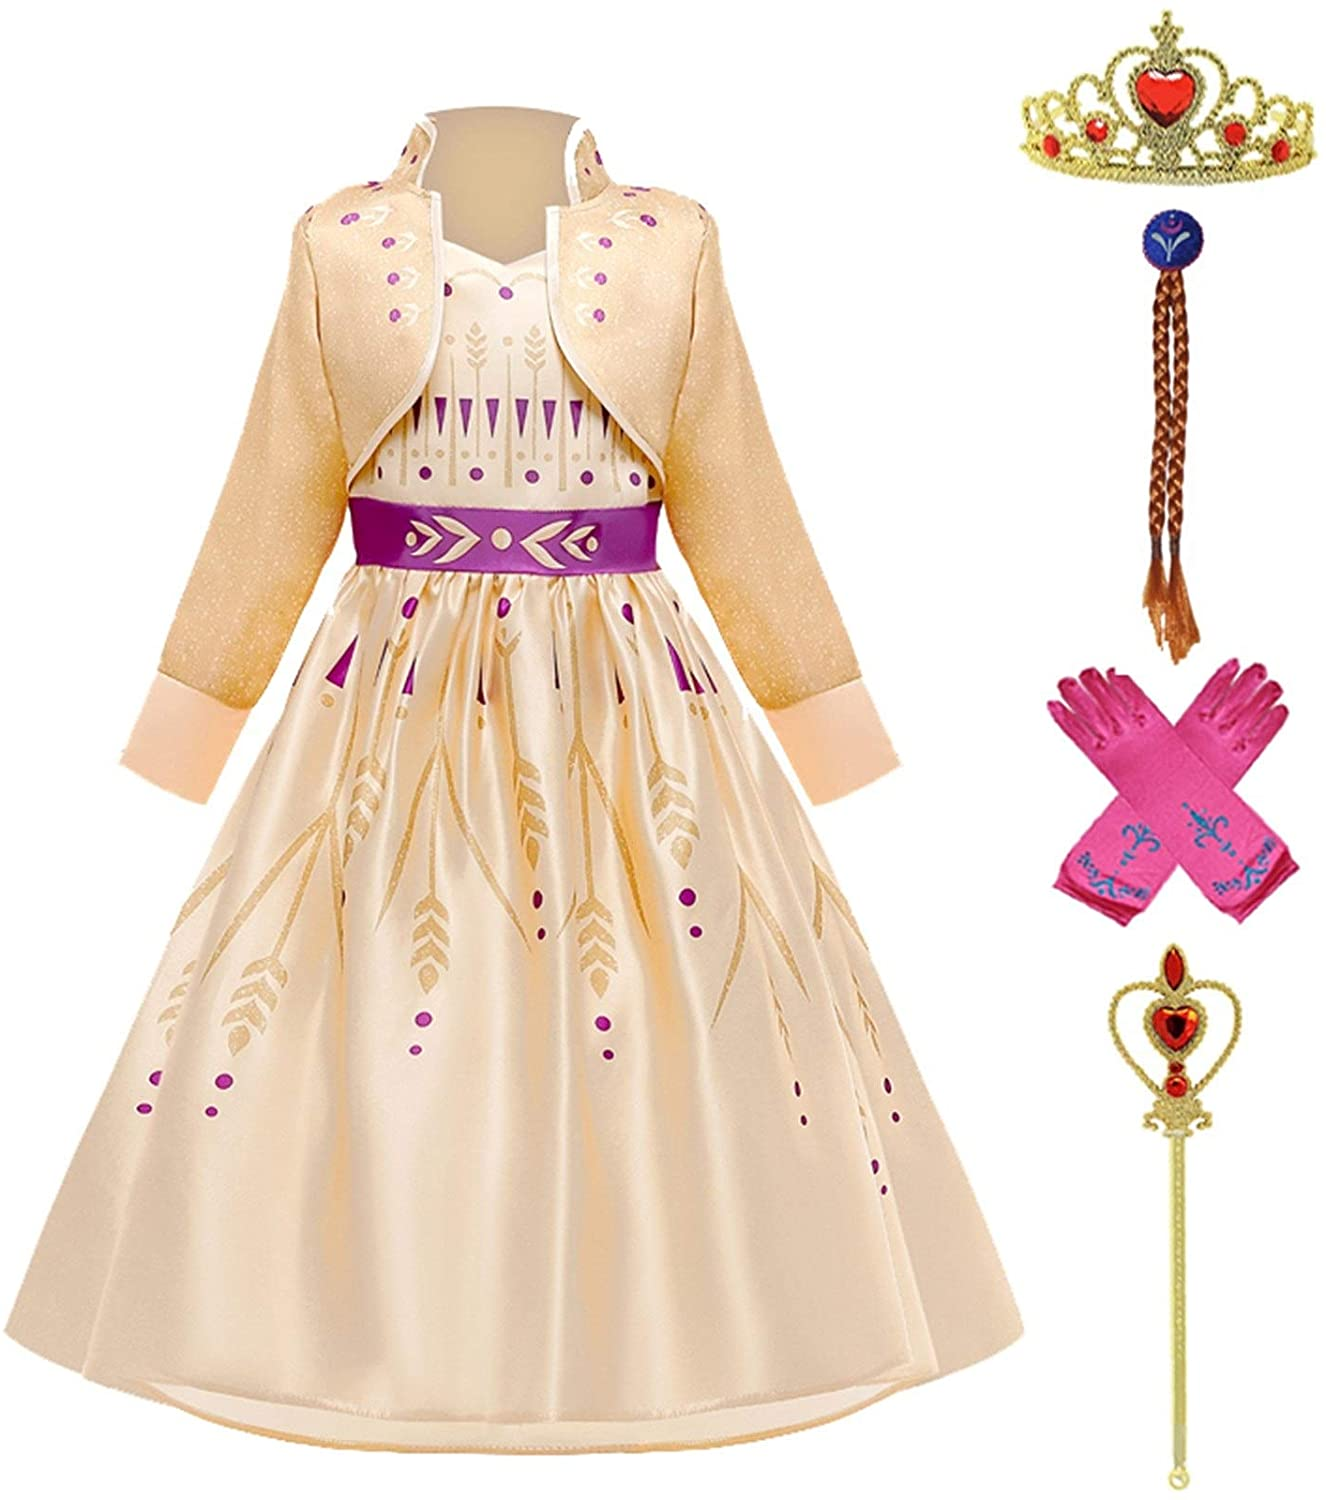 XYXINS Dresses for Girls Princess Party Elsa Costume Snow Queen 2 Cosplay Hair Accessory Set Halloween Girls Clothes Festive Dress Up Princess Look (Color : Anna Set 3, Kid Size : 10)